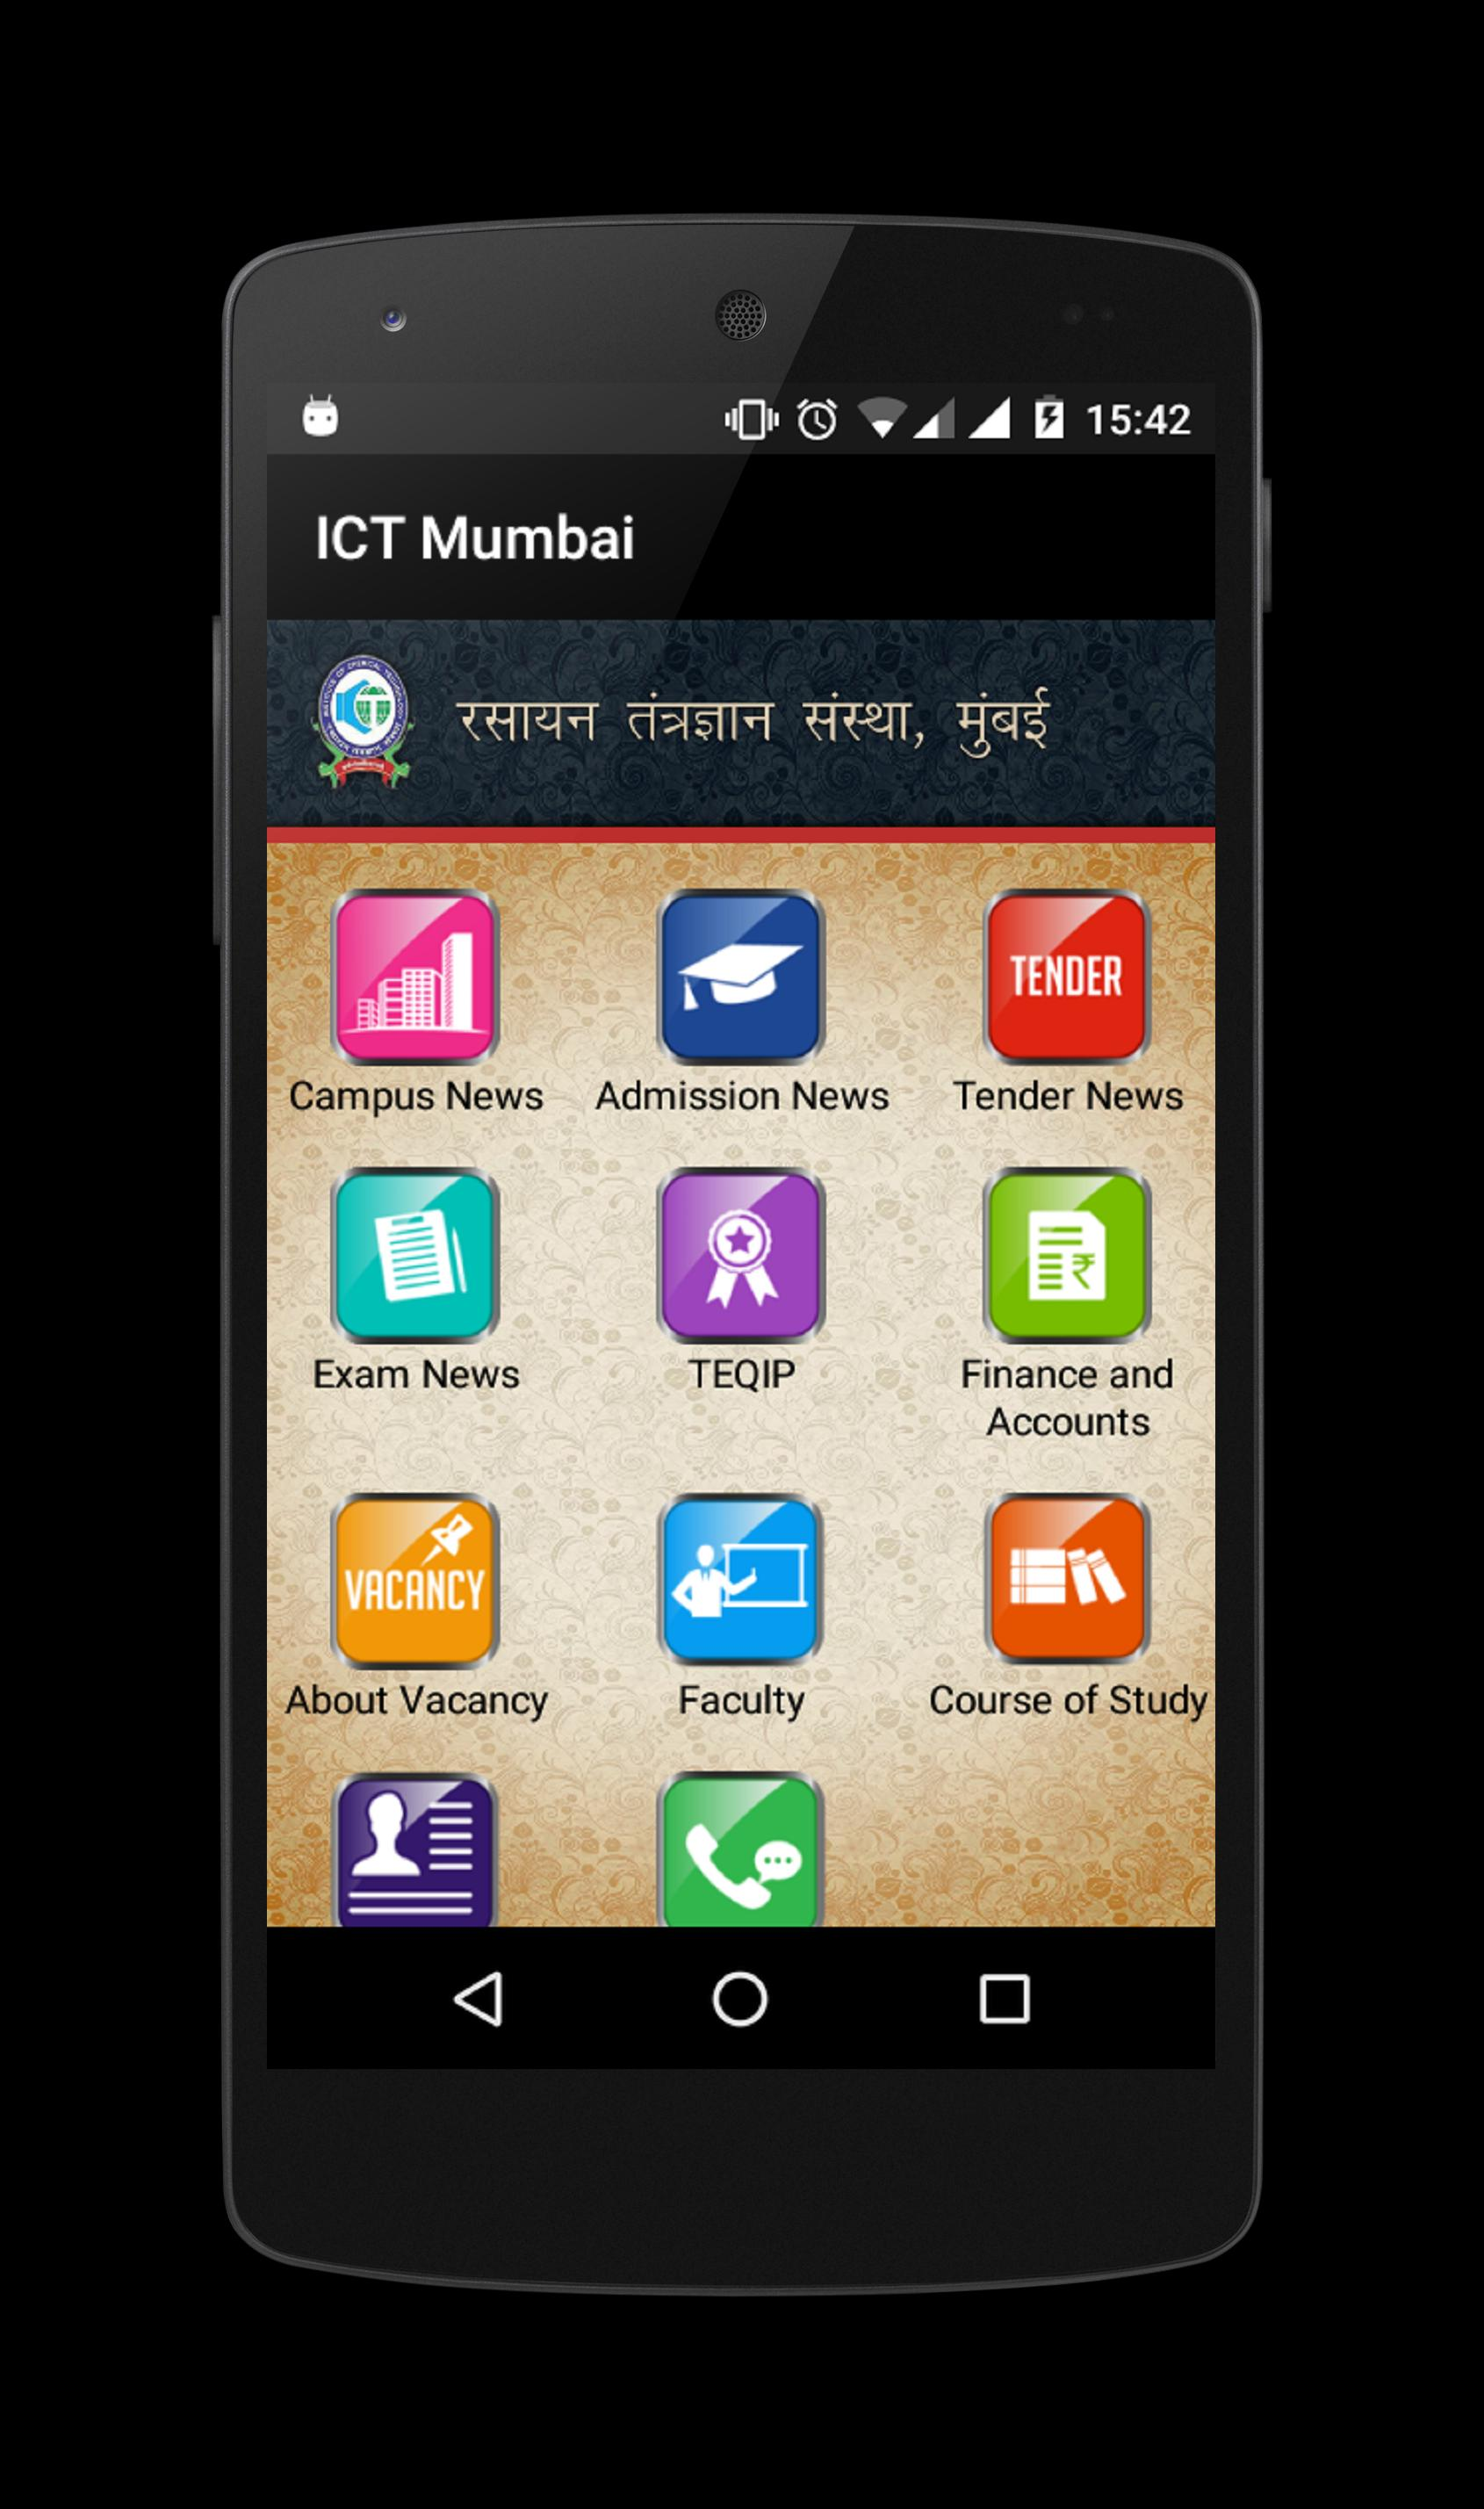 ICT Mumbai for Android - APK Download